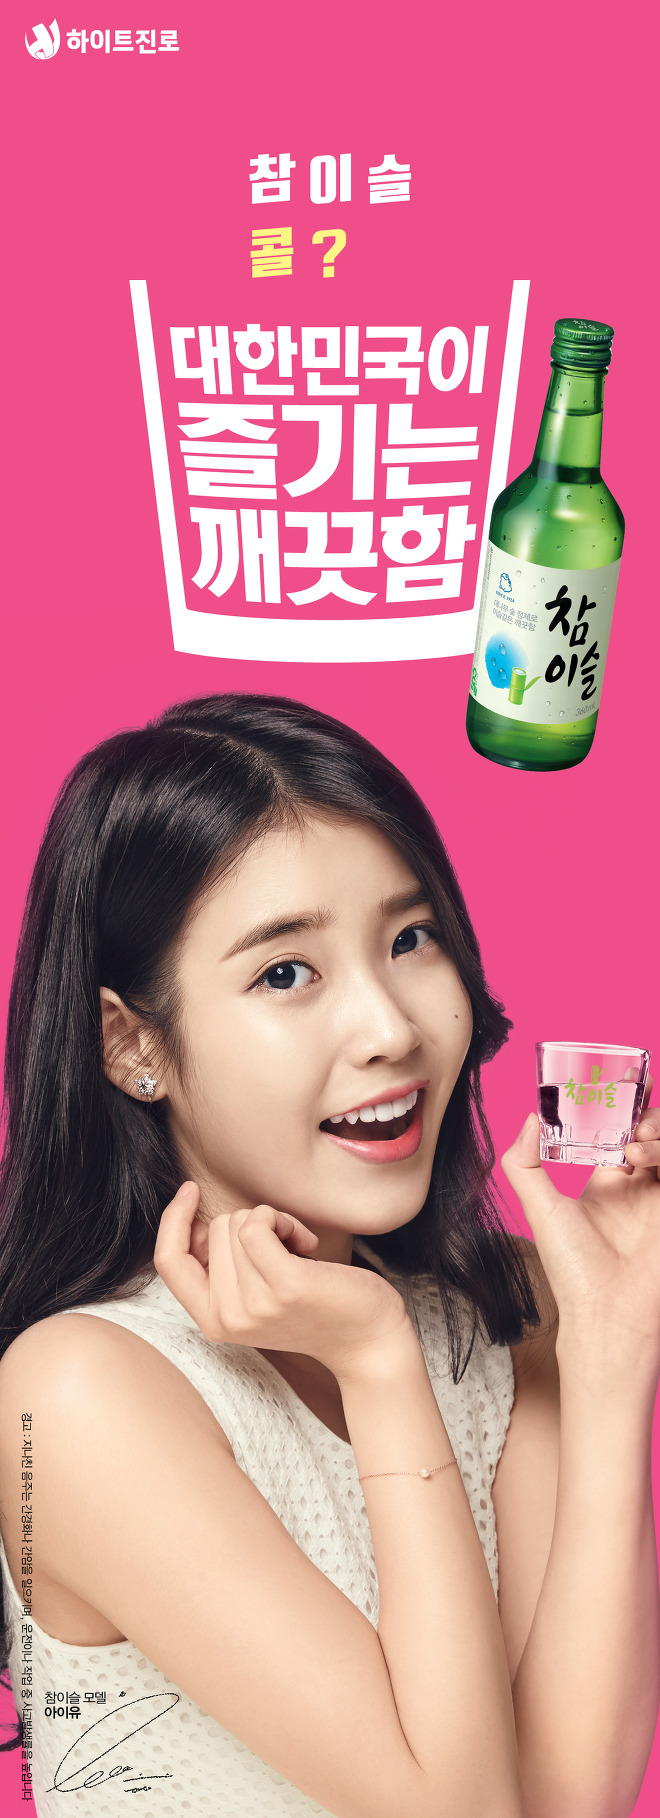 Tags: K-Pop, IU, Cup, Bracelet, Glass (Cup), Mole, Alcohol, Korean Text, Facial Mark, Soju, Chamisul